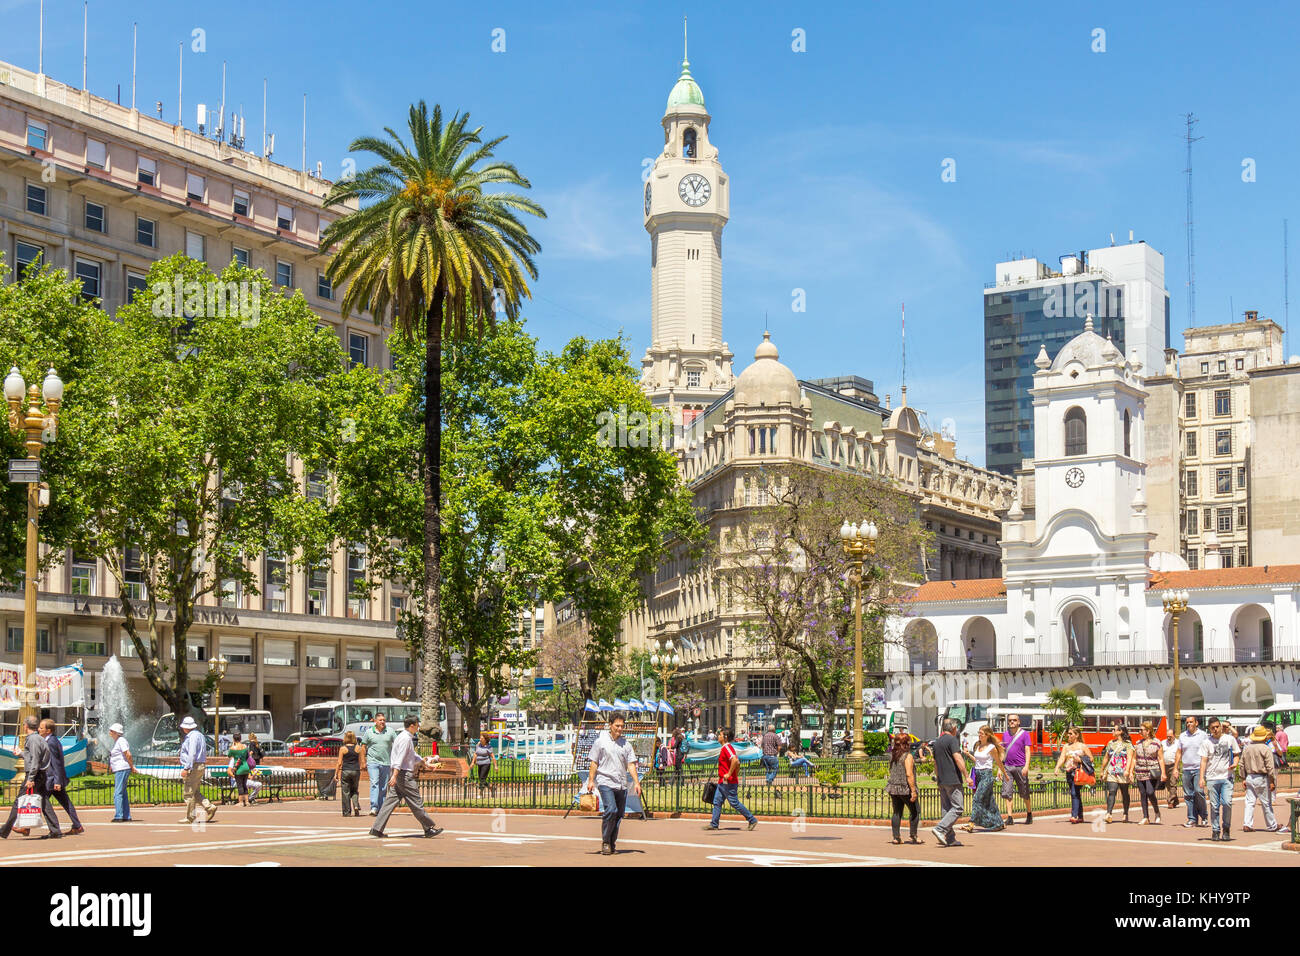 Plaza de Mayo | Buenos Aires | Argentina - Stock Image